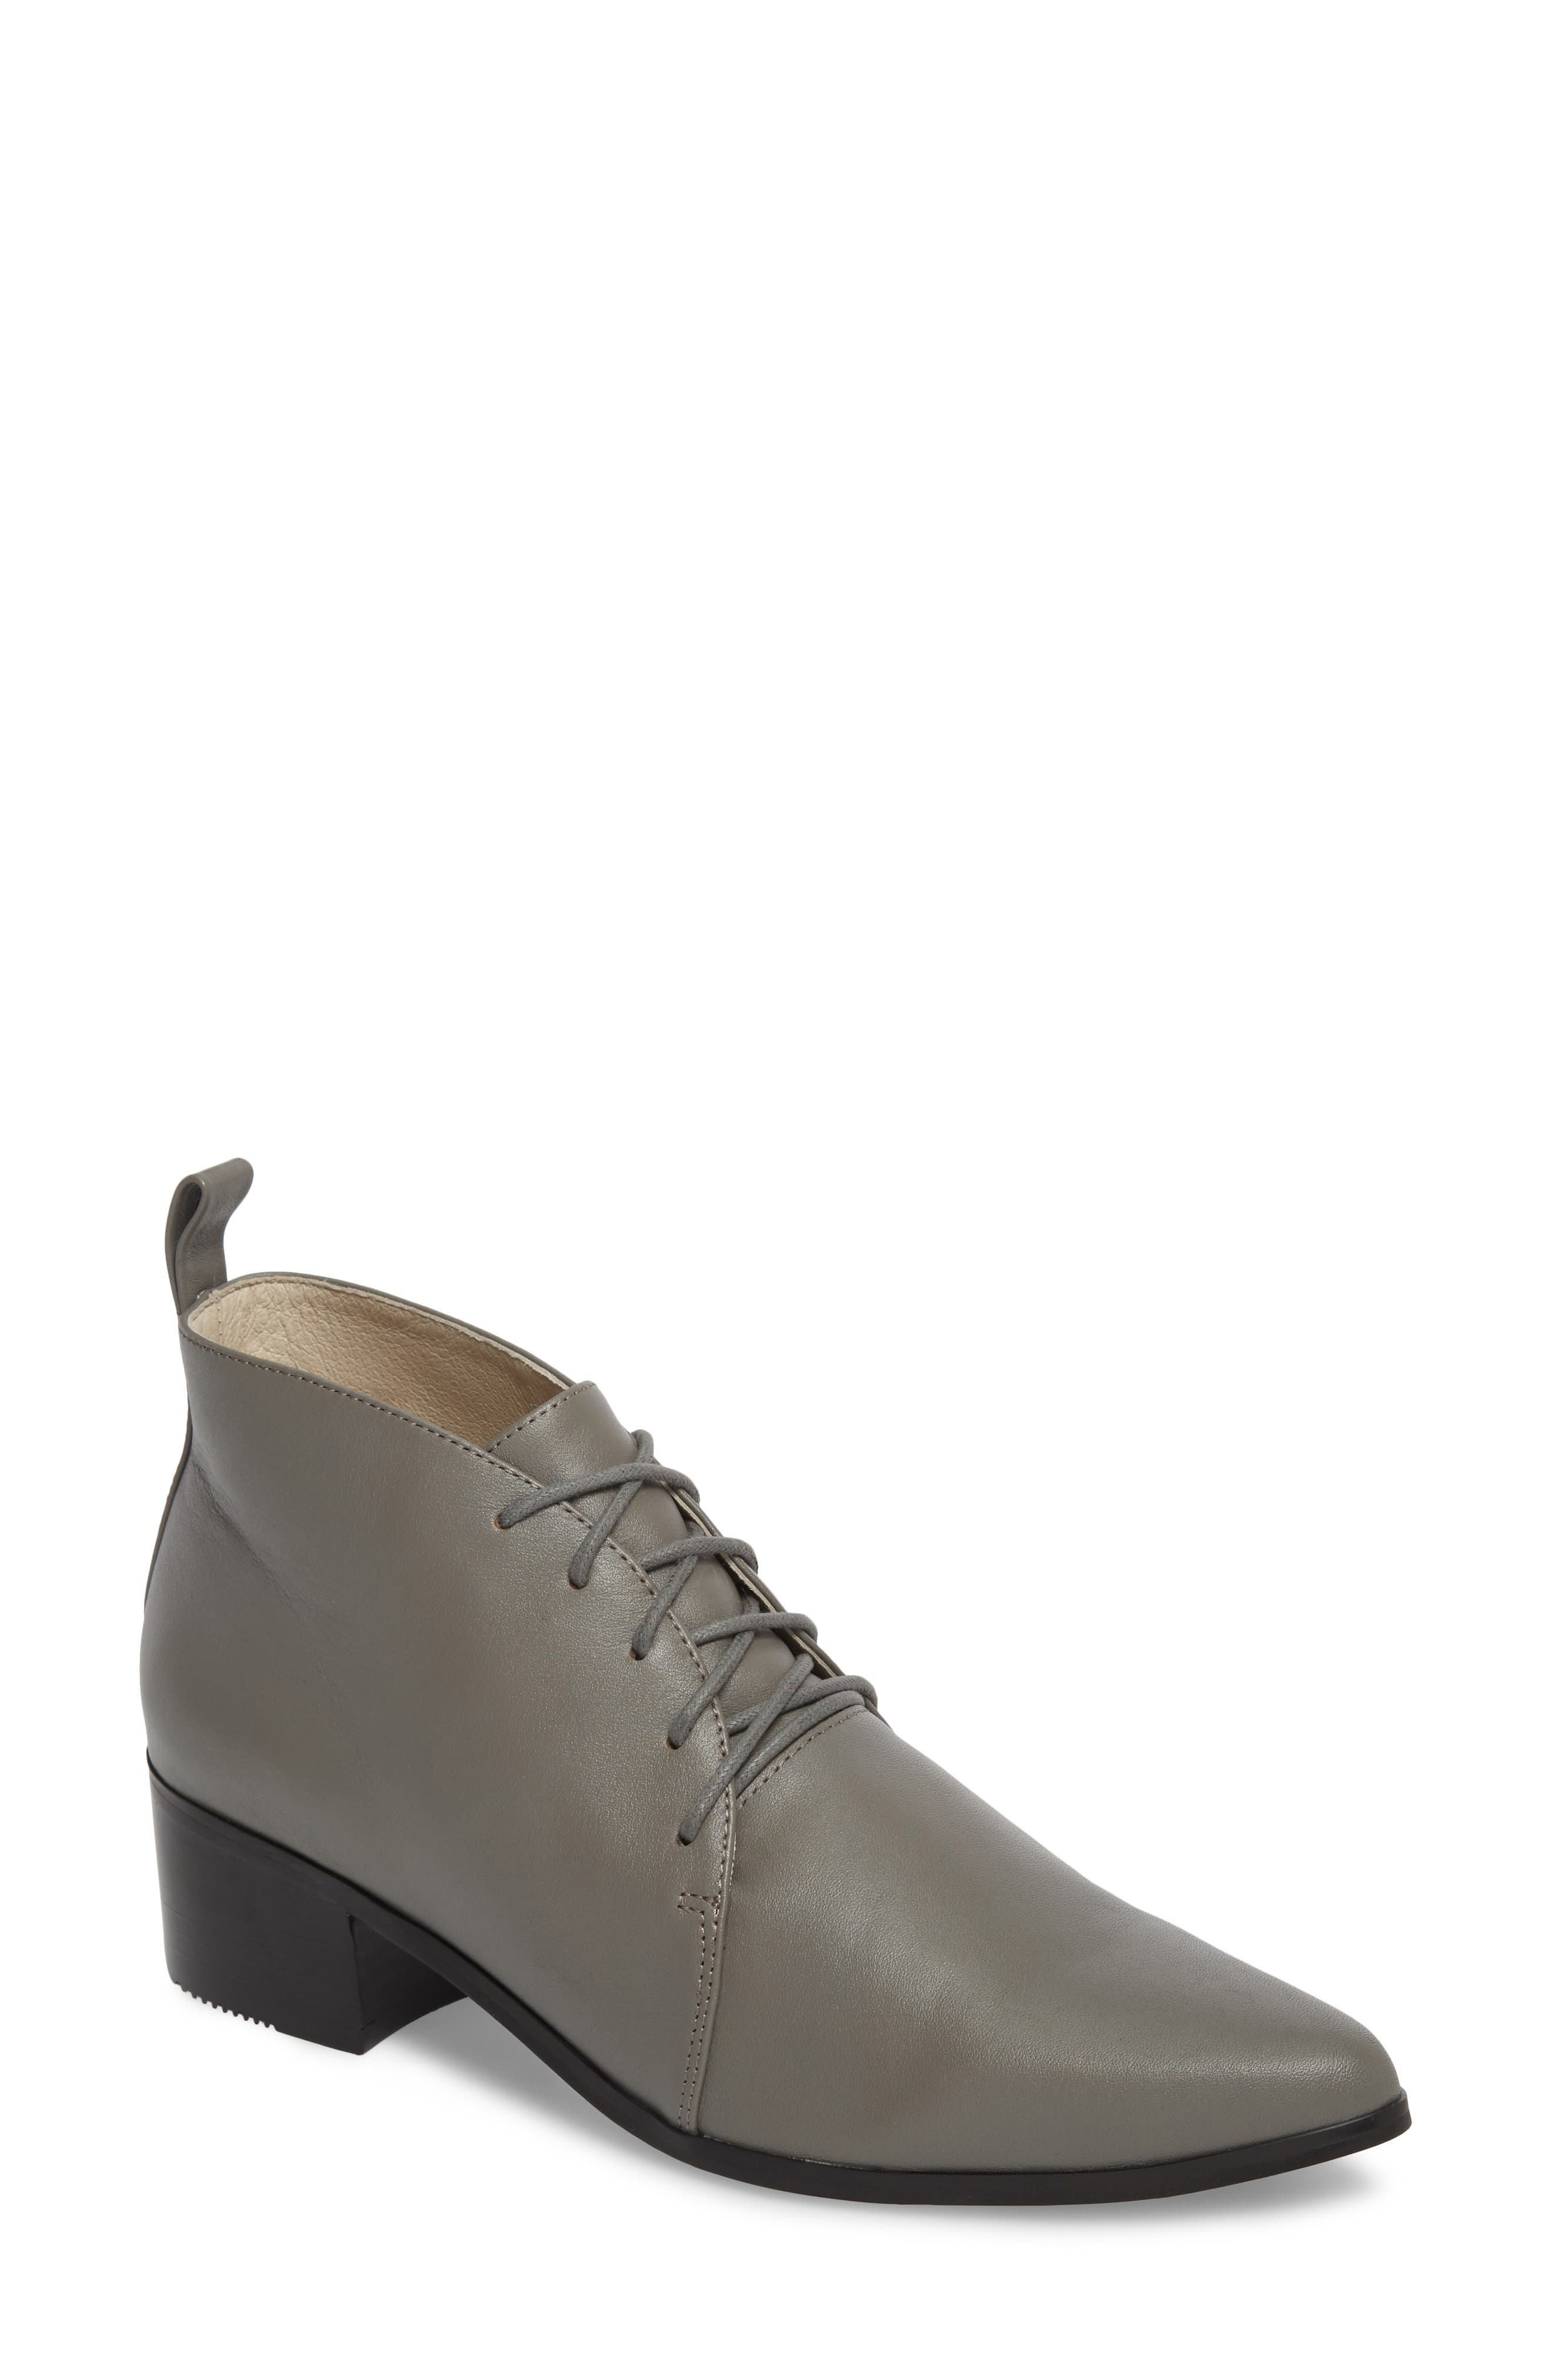 Waverly Lace-Up Bootie,                         Main,                         color, 035